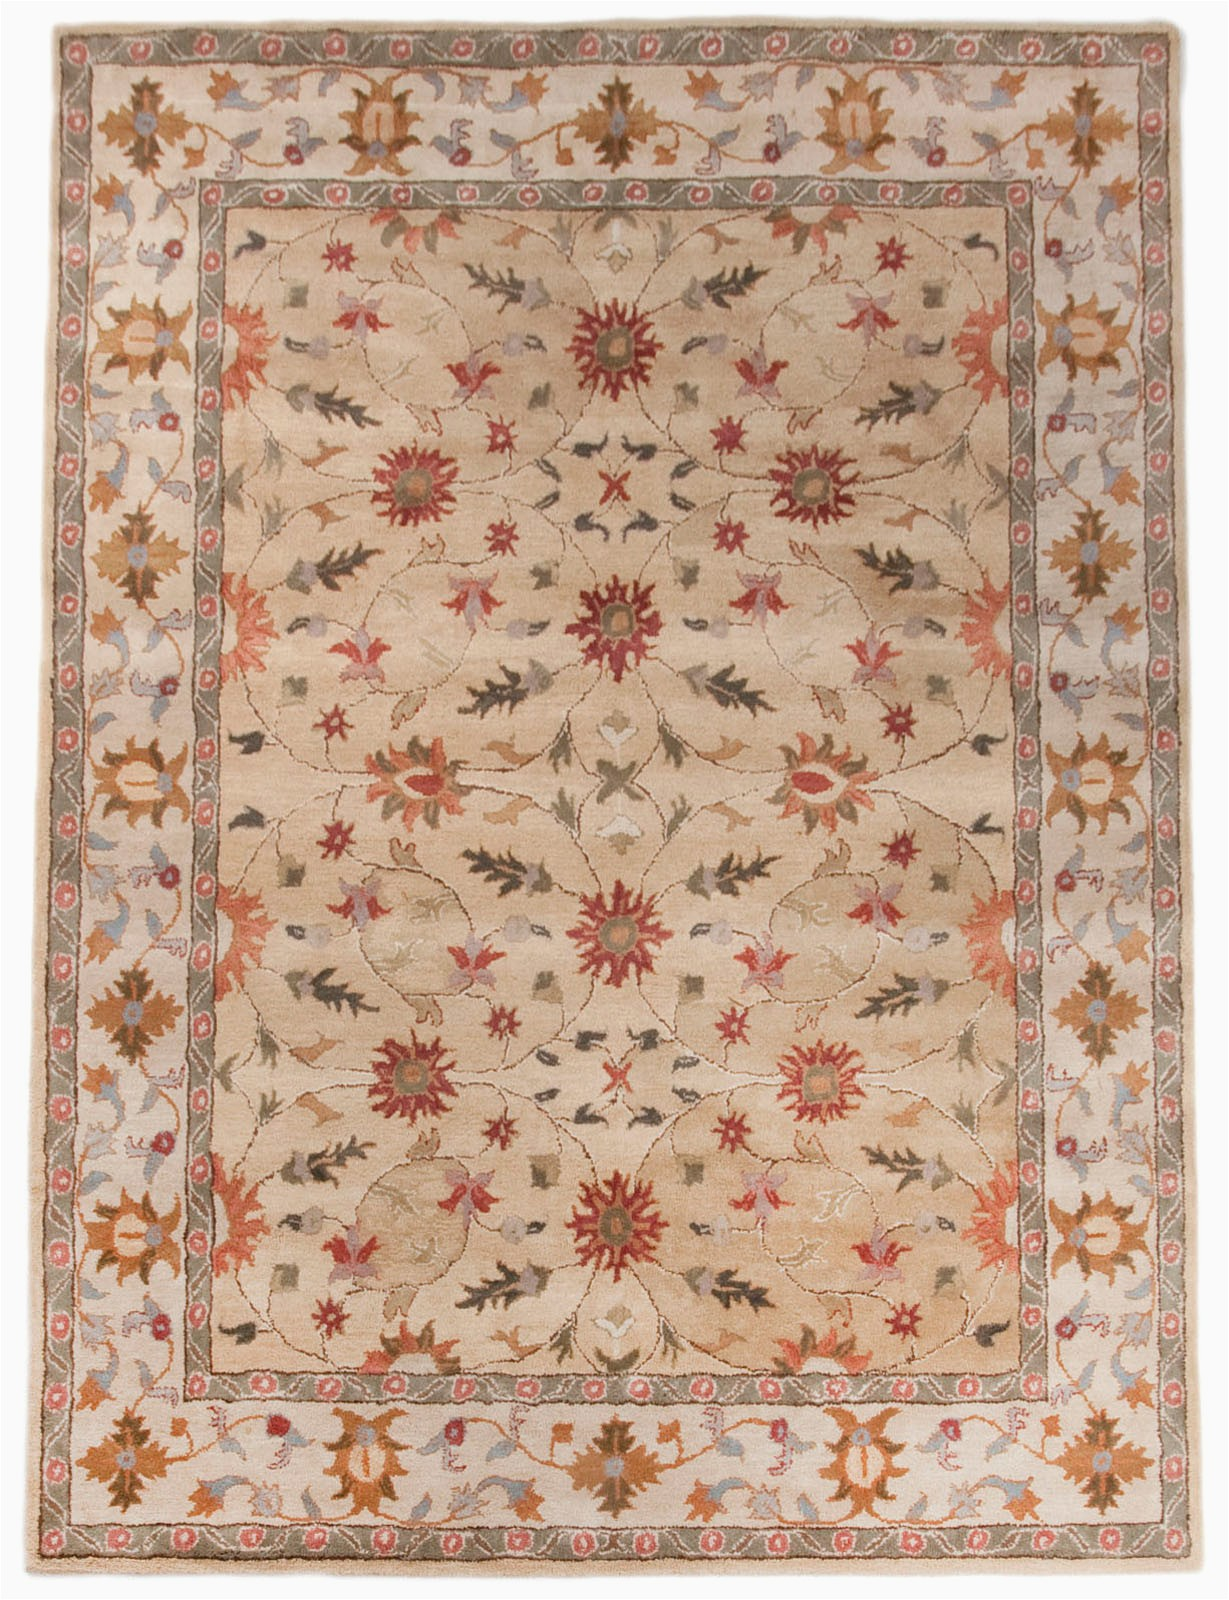 lowes rugs 8x10 8x10 area rugs 9x12 seagrass rug costco area rugs home depot area rugs 5x7 8x10 shag area rug kohls rugs 8x10 area rugs home depot 10x12 area rugs area rugs 8x10 pink area